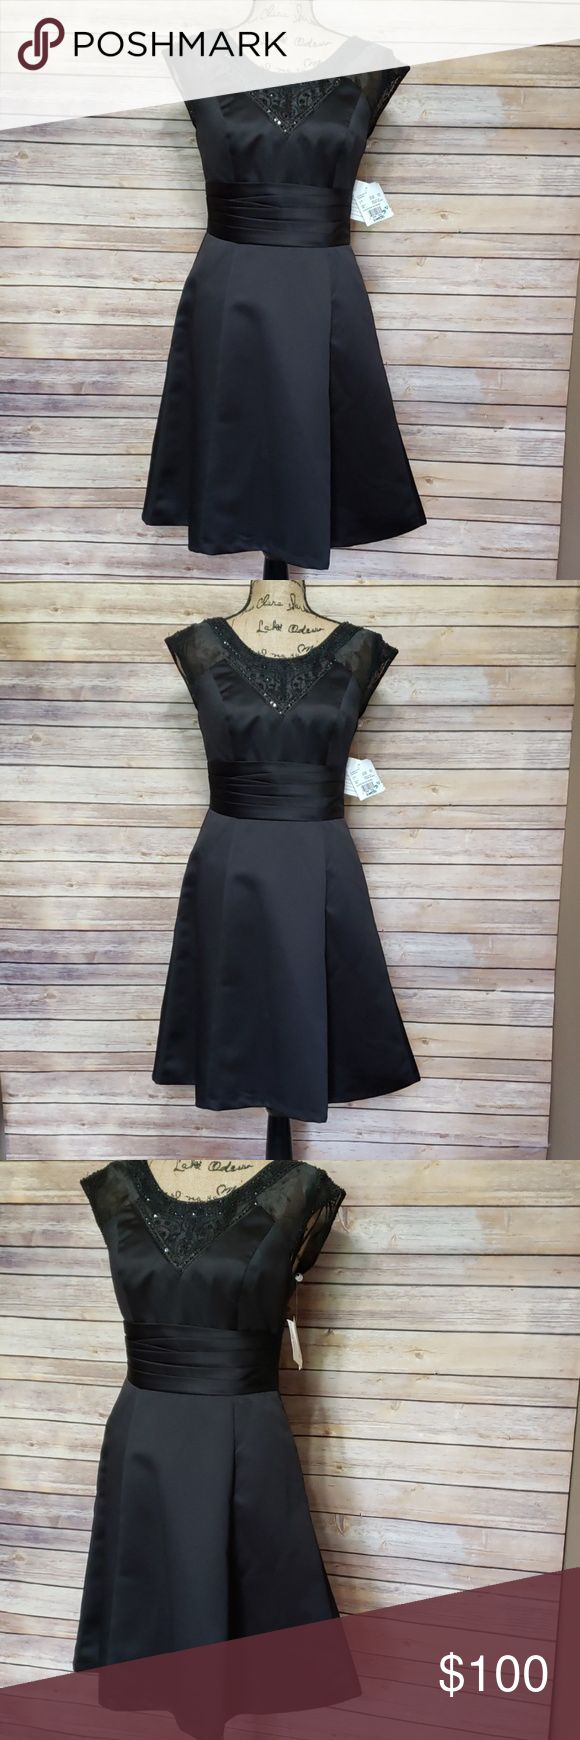 David's Bridal Satin Classic Style formal Dress This black dress is a size 4... 2